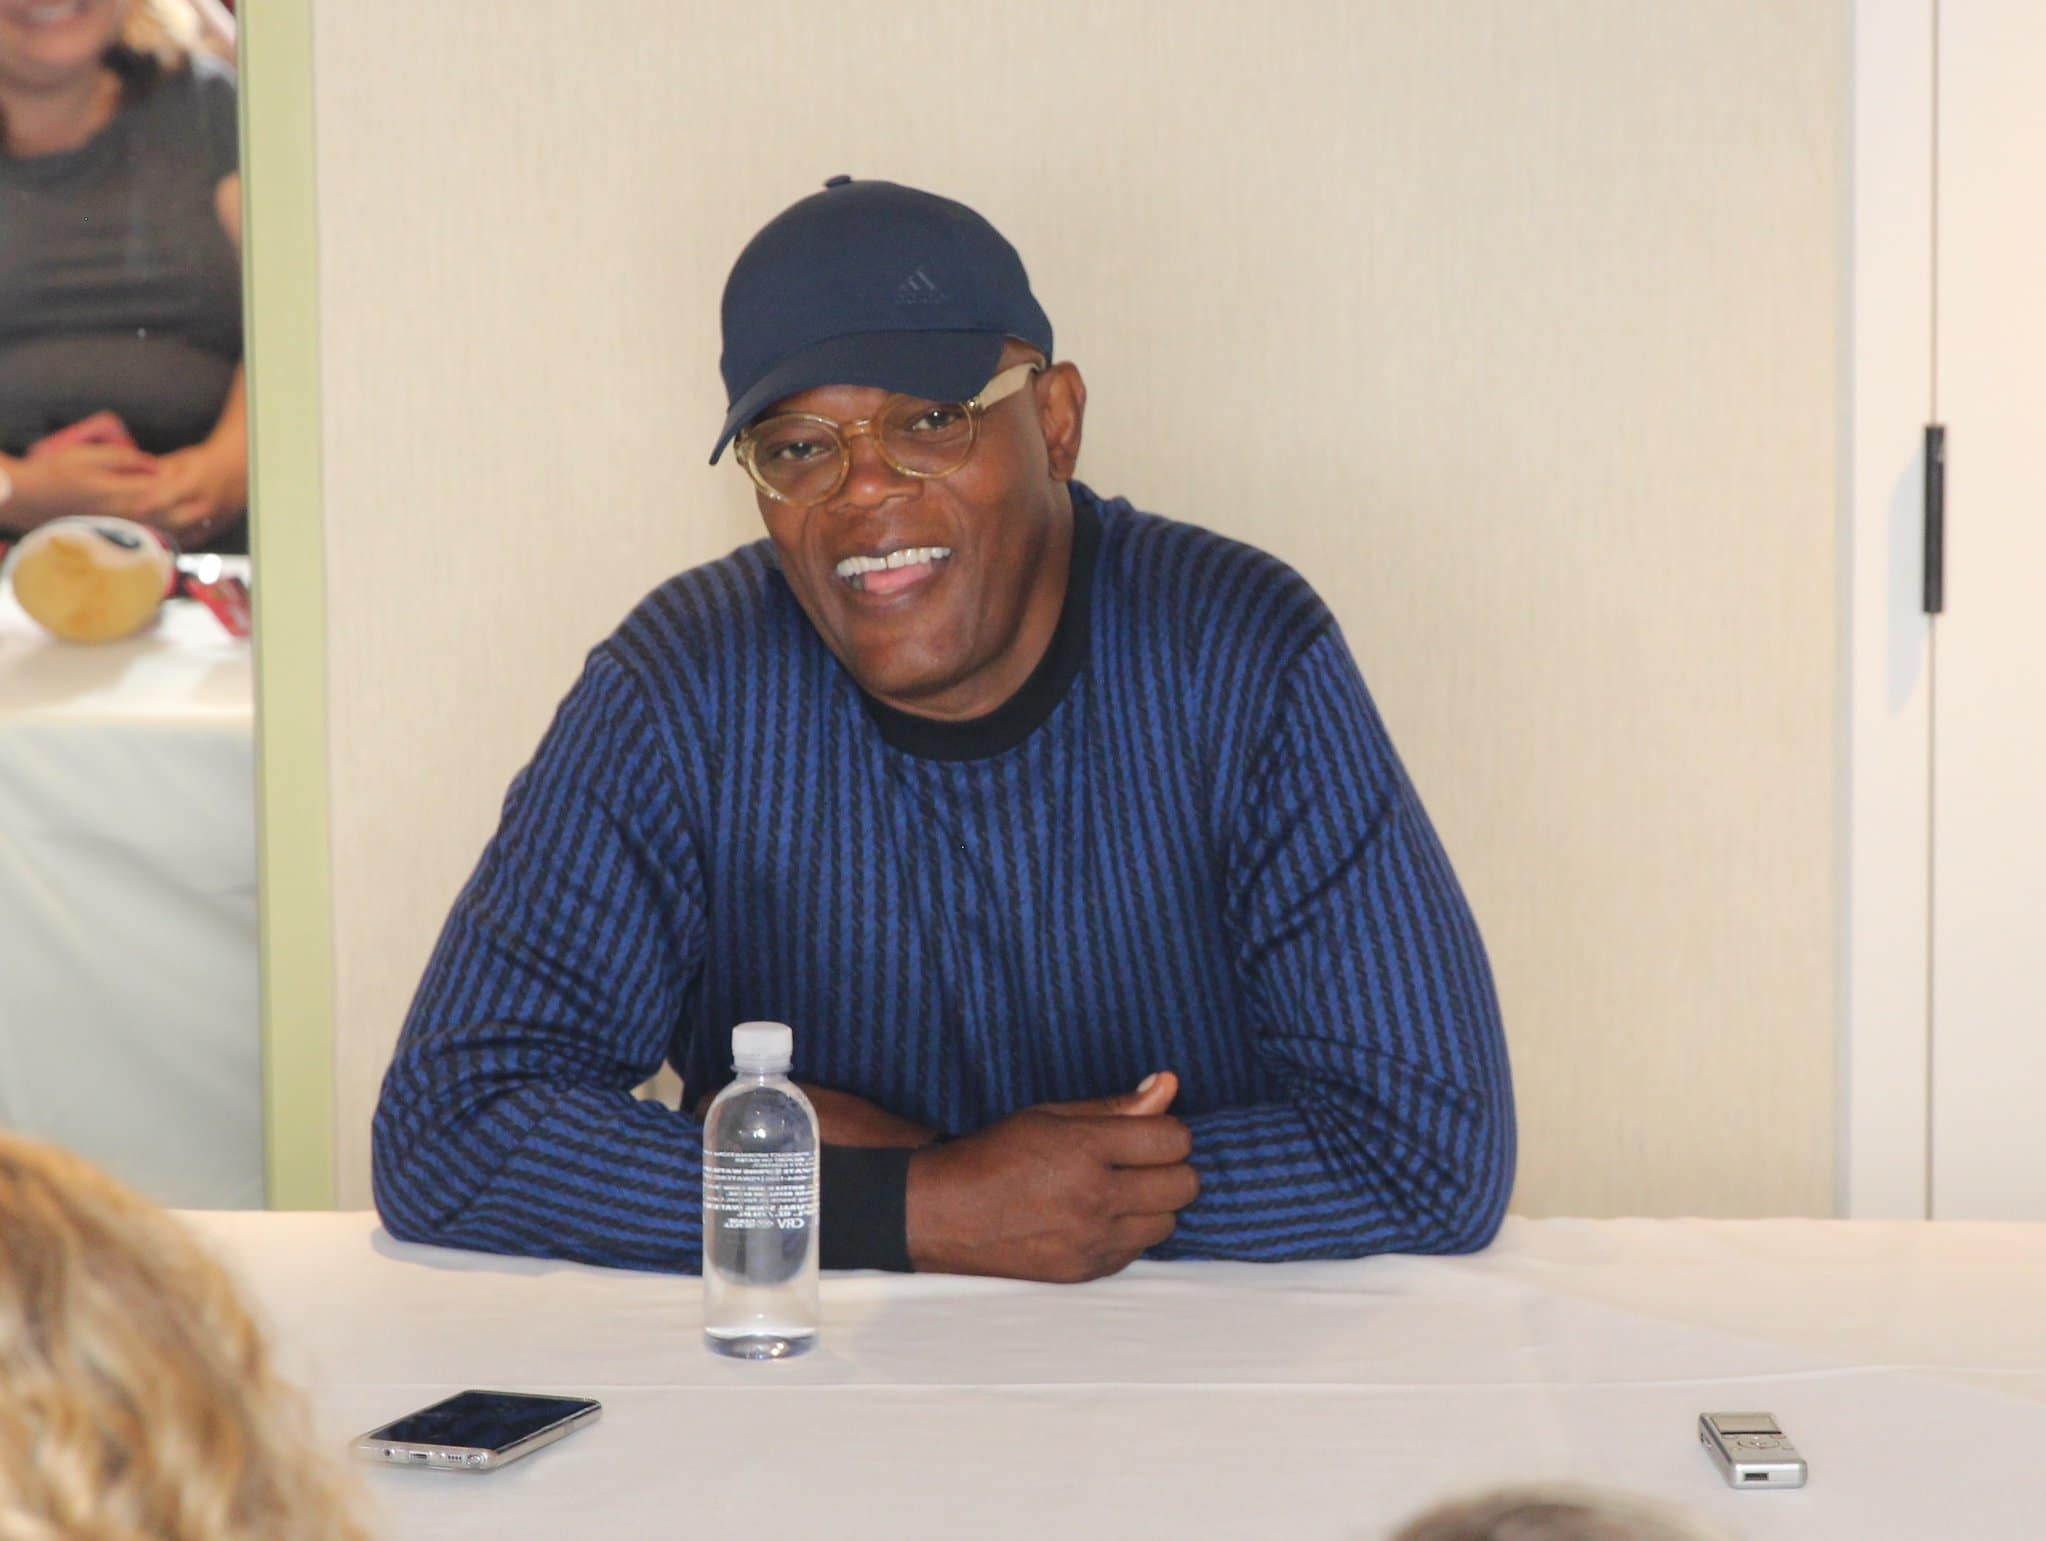 Samual L. Jackson at Incredibles2event press junket smiling. Full Interview and look inside what Samual thought about the Incredibles 2 Film.